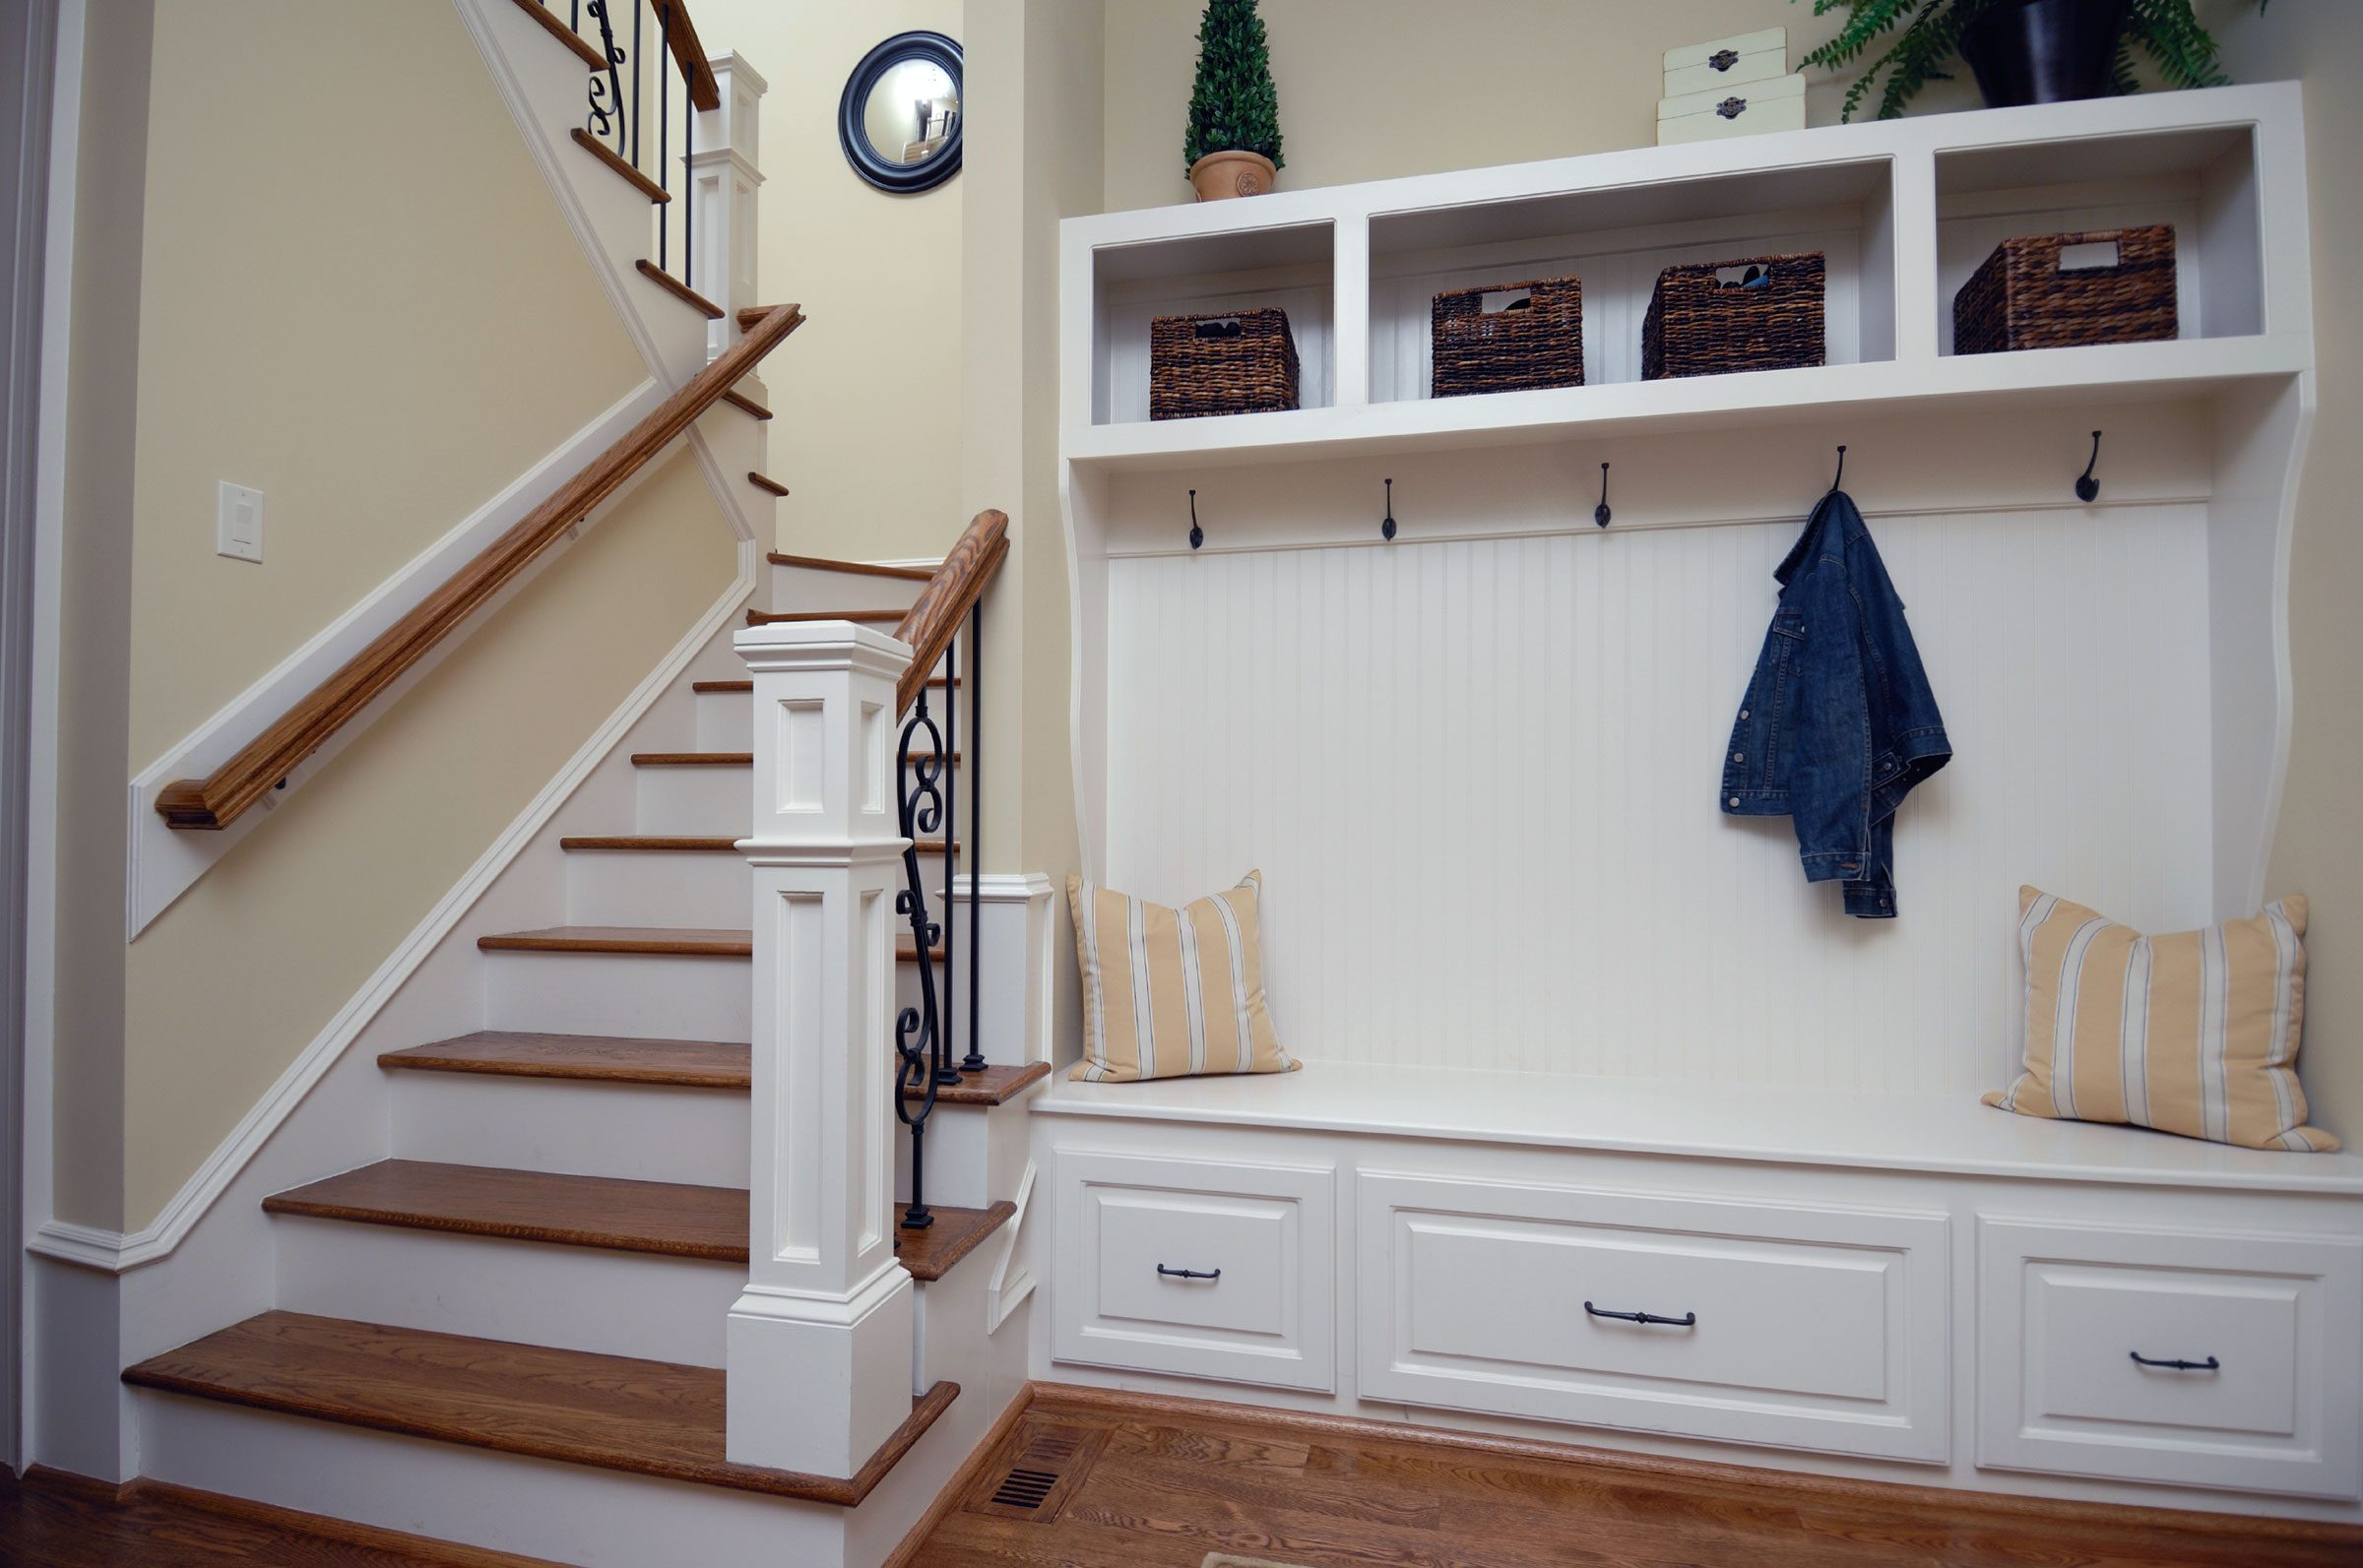 Home Organizers For Hire 13 secrets personal organizers would never tell you for free